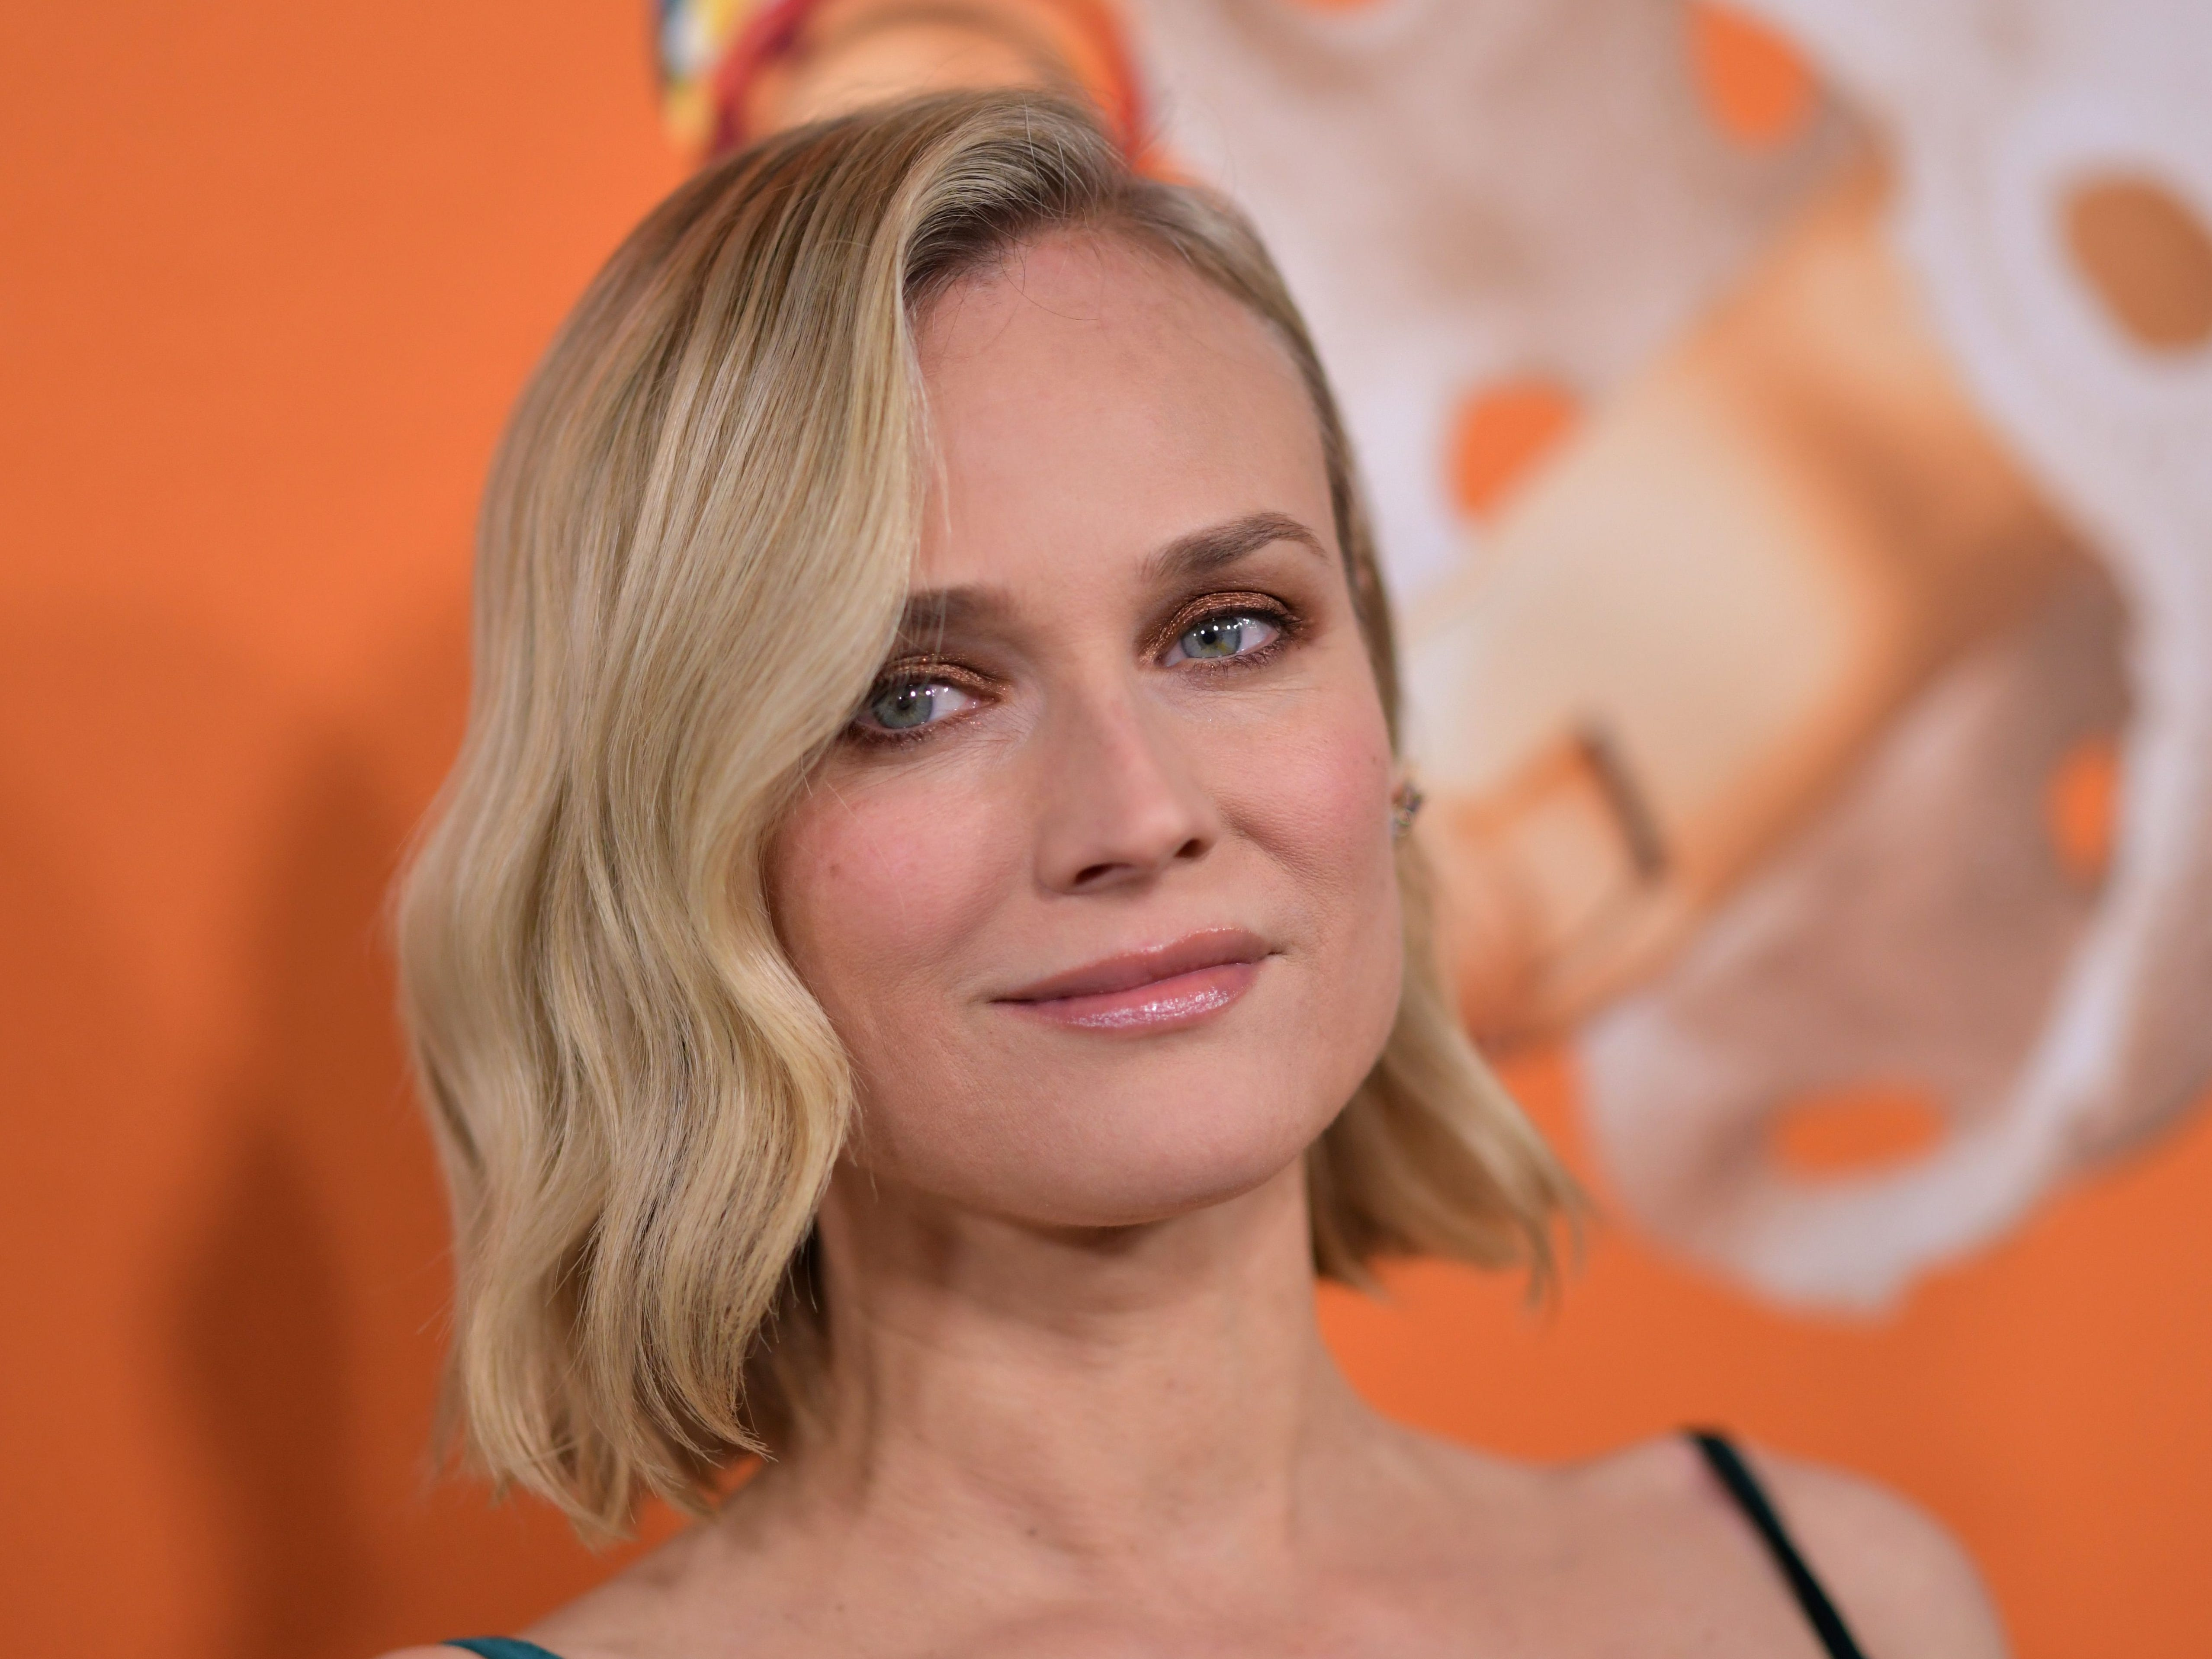 Diane Kruger, 42, flaunts abs four months after giving birth: 'The female body is AMAZING'